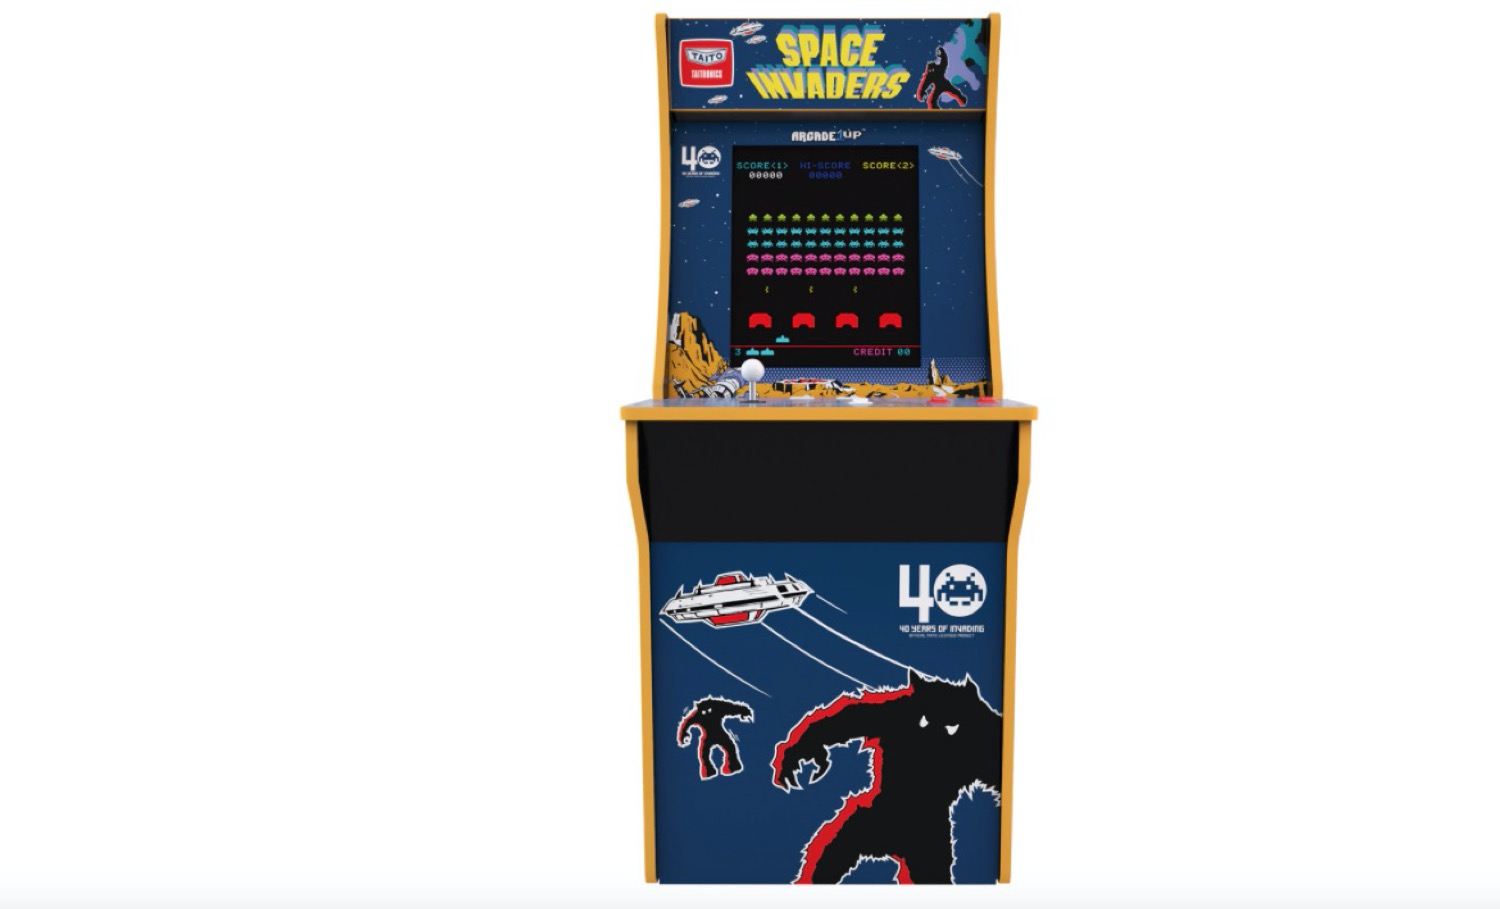 Consola Arcade - Space Invaders